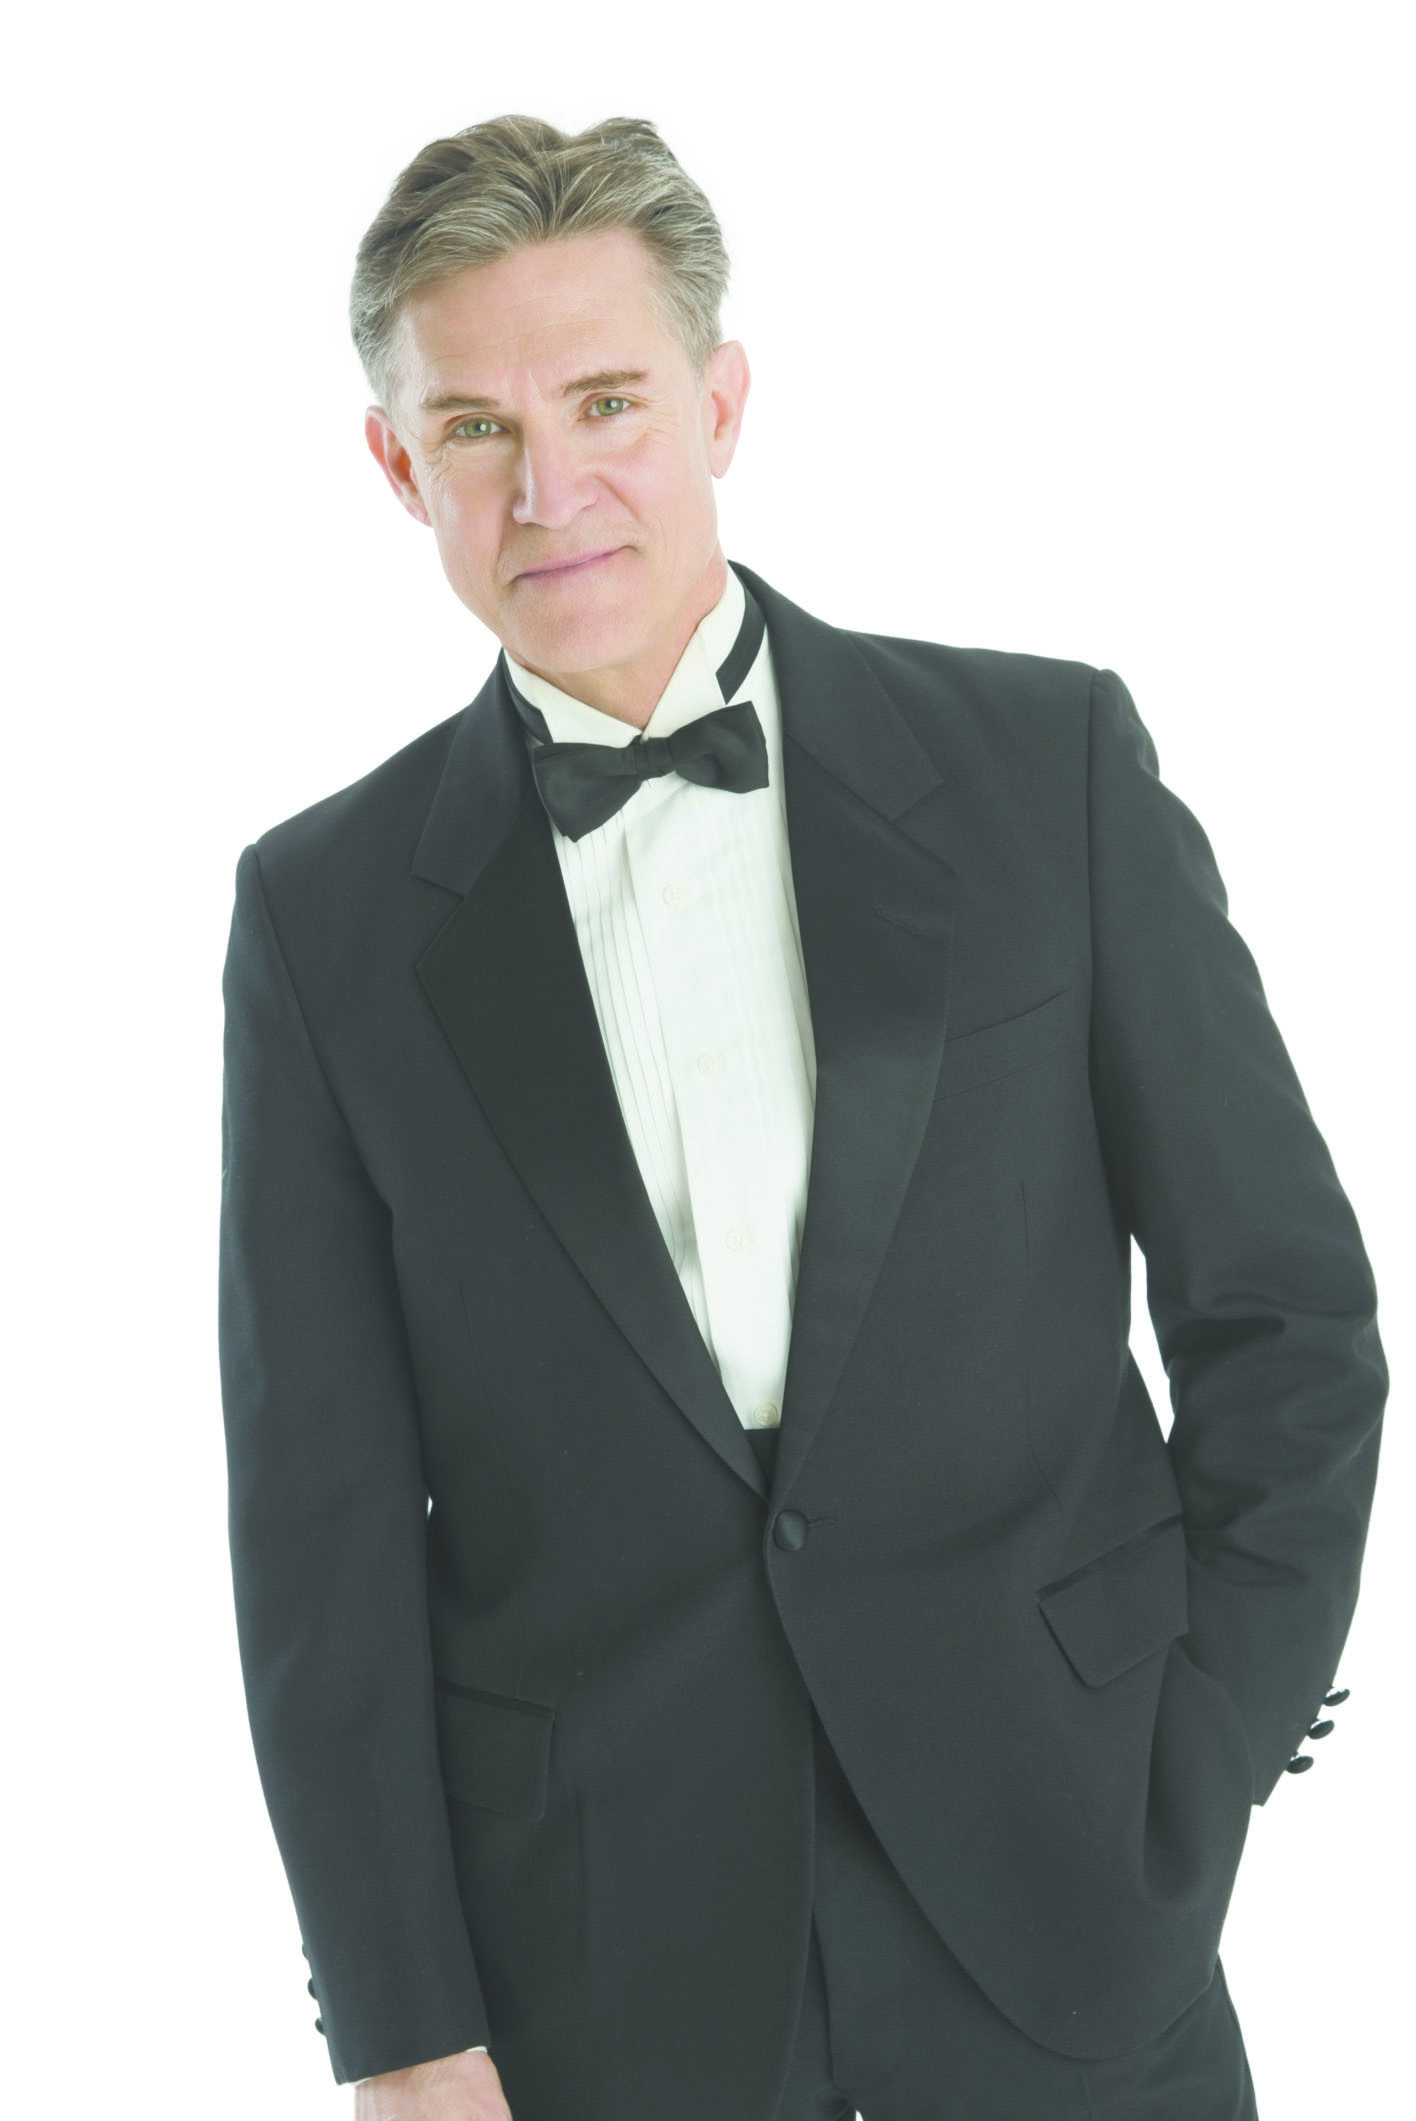 Confident Man In Tuxedo Standing Against White Background